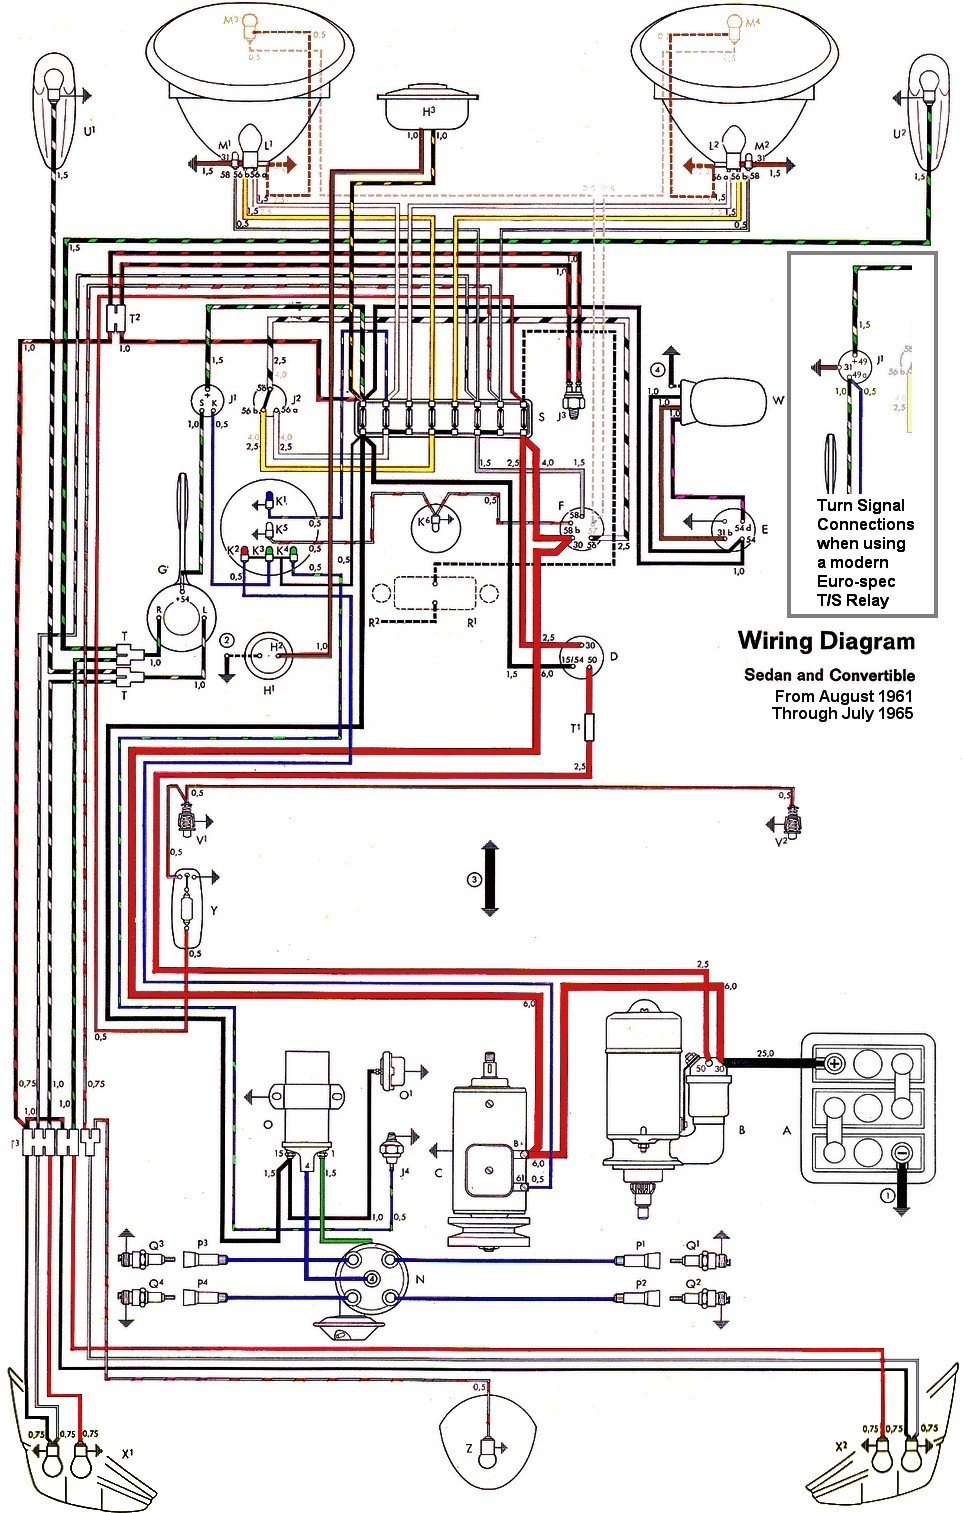 bug_62 65withinset volkswagen turn signal wiring diagram volkswagen wiring diagrams Badlands Load Equalizer Wiring-Diagram at readyjetset.co